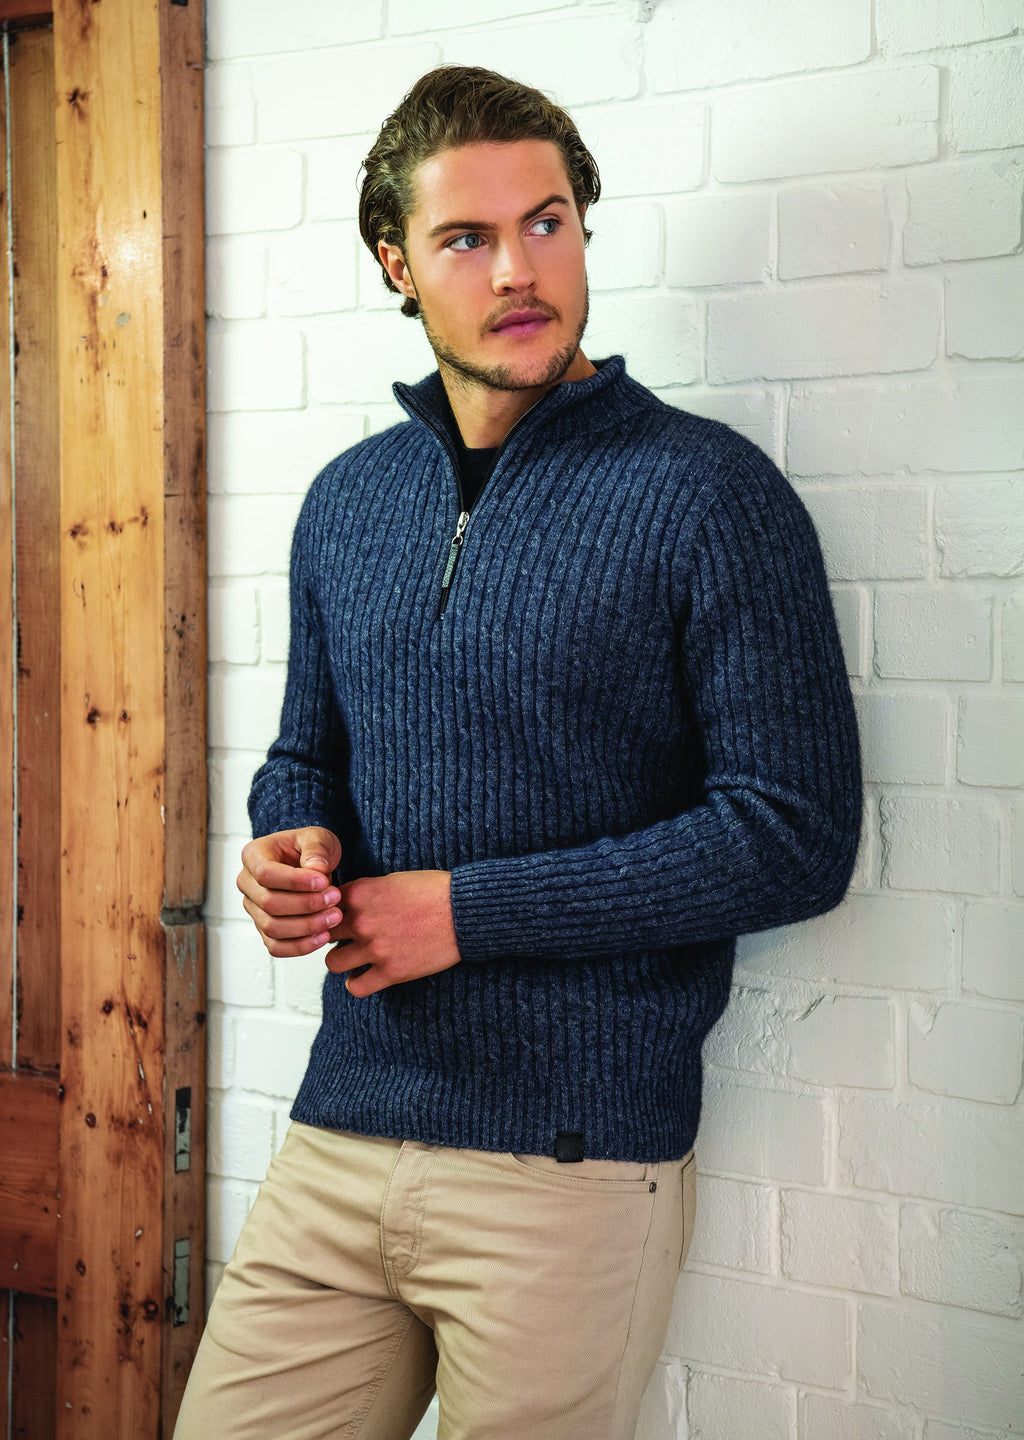 CABLE HALF ZIP SWEATER - Woolshed Gallery